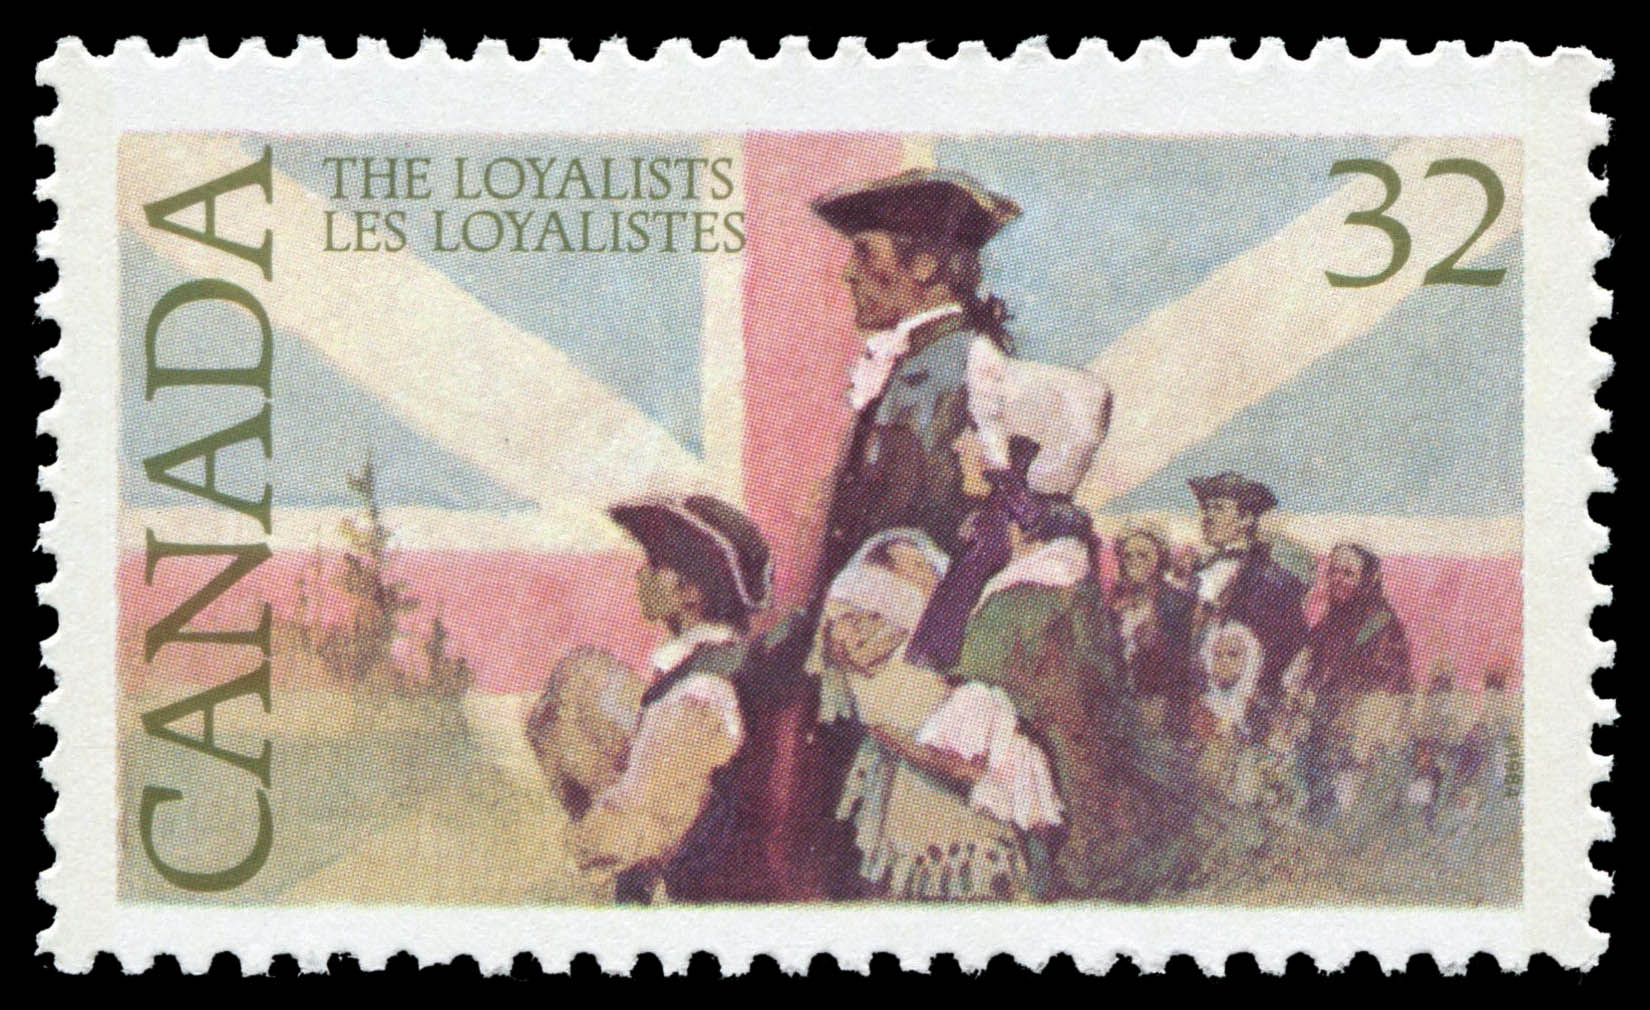 The Loyalists Canada Postage Stamp